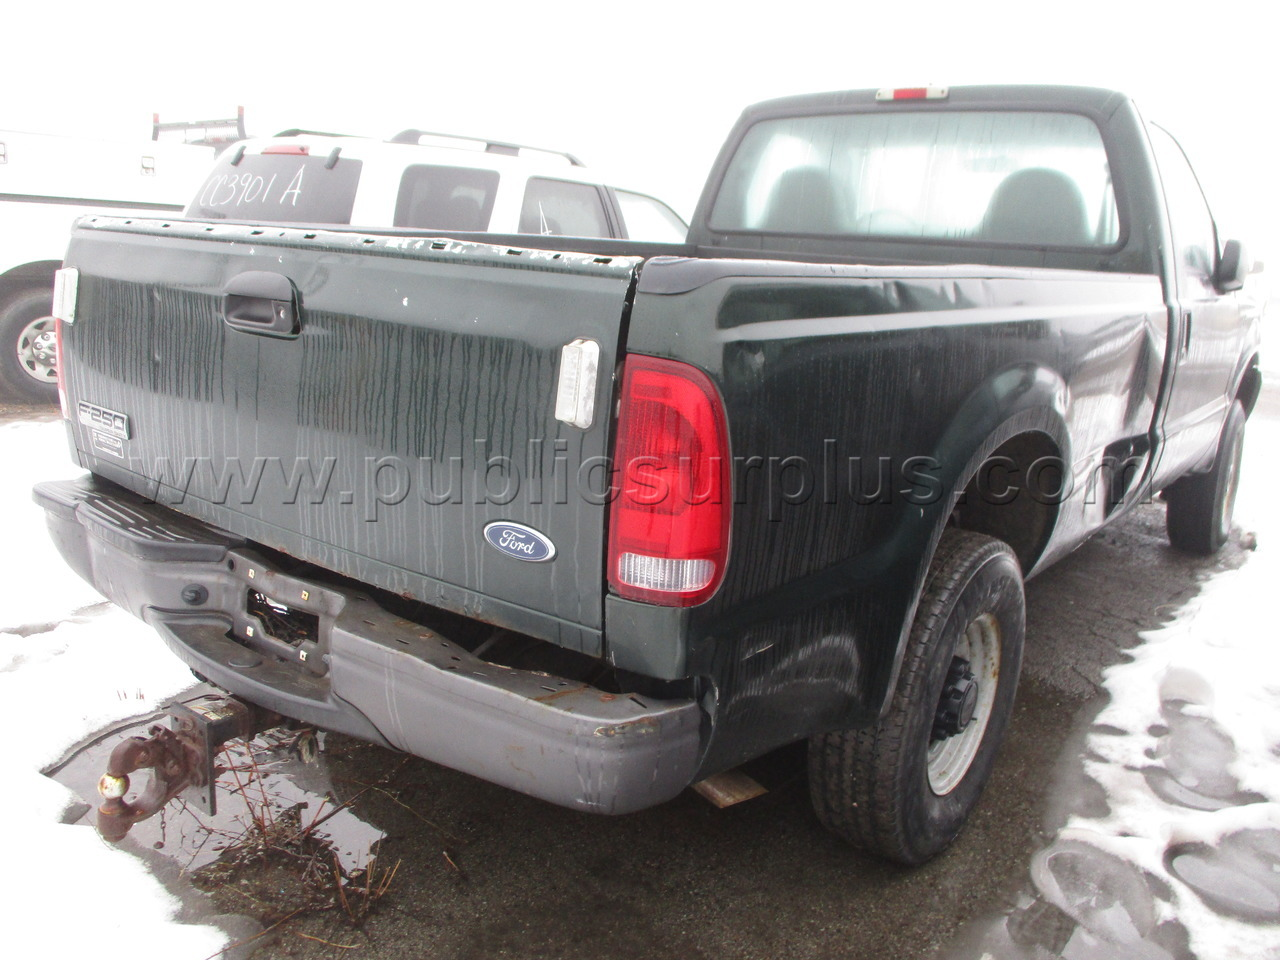 #2031364 - 2004 FORD PICKUP TRUCK 4WD